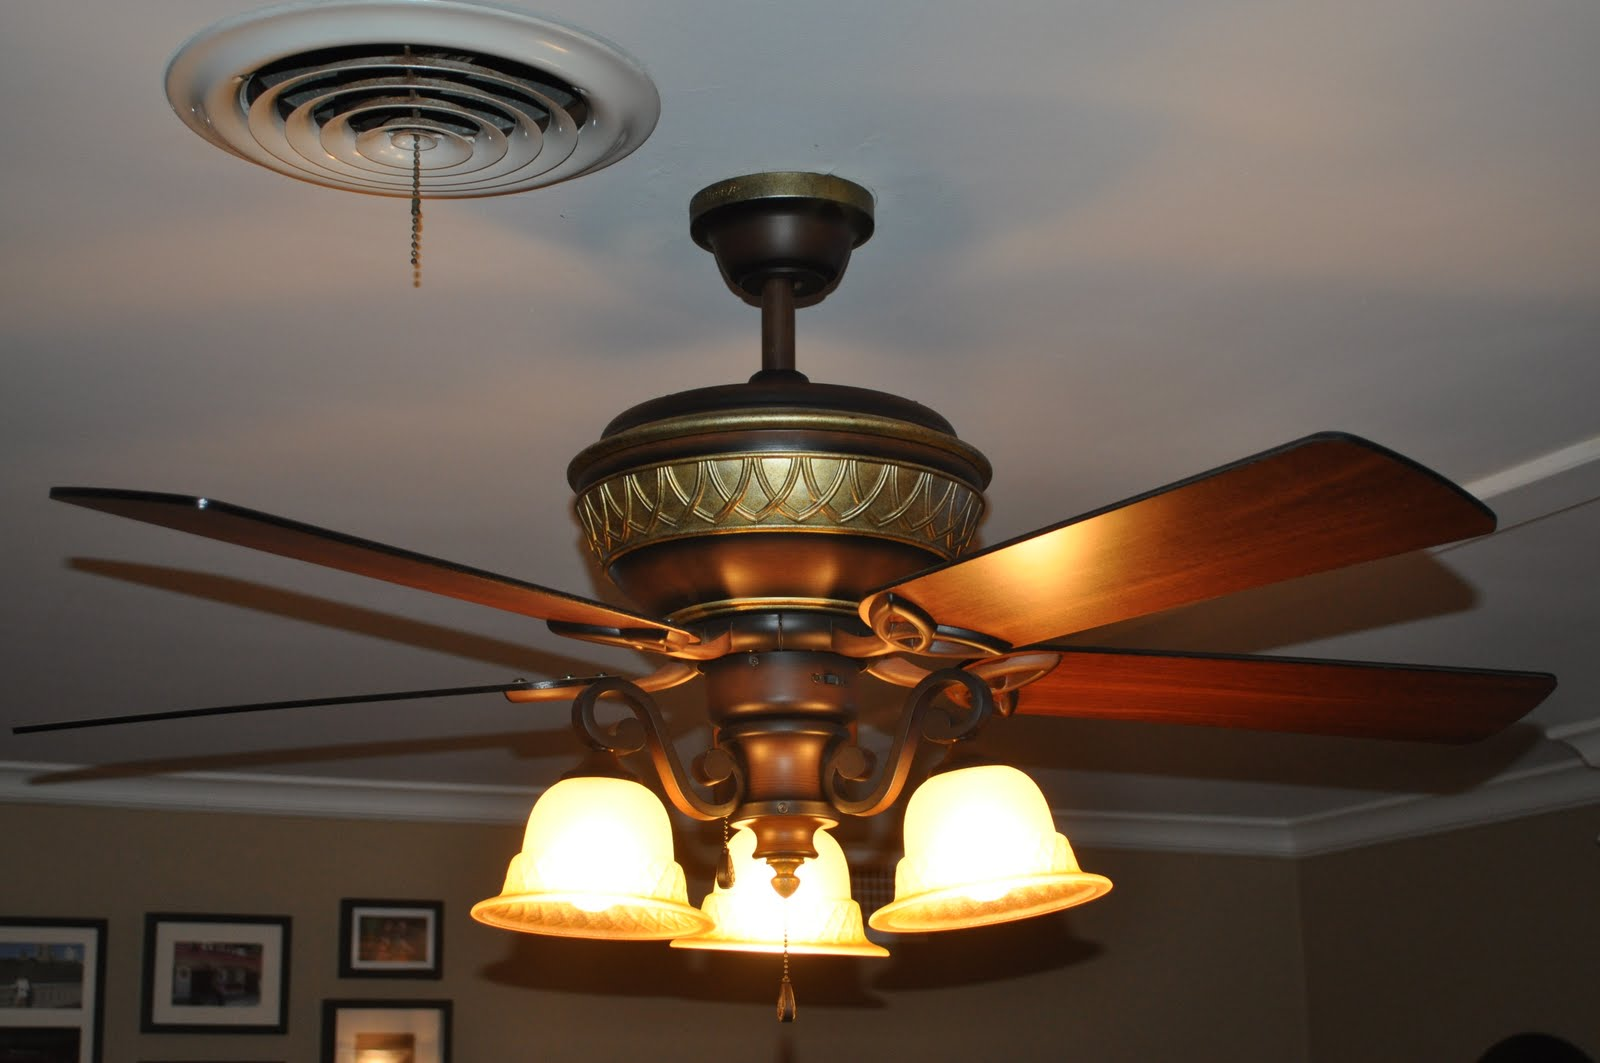 know I took a picture of the pre-existing light fixture but I cannot  title=